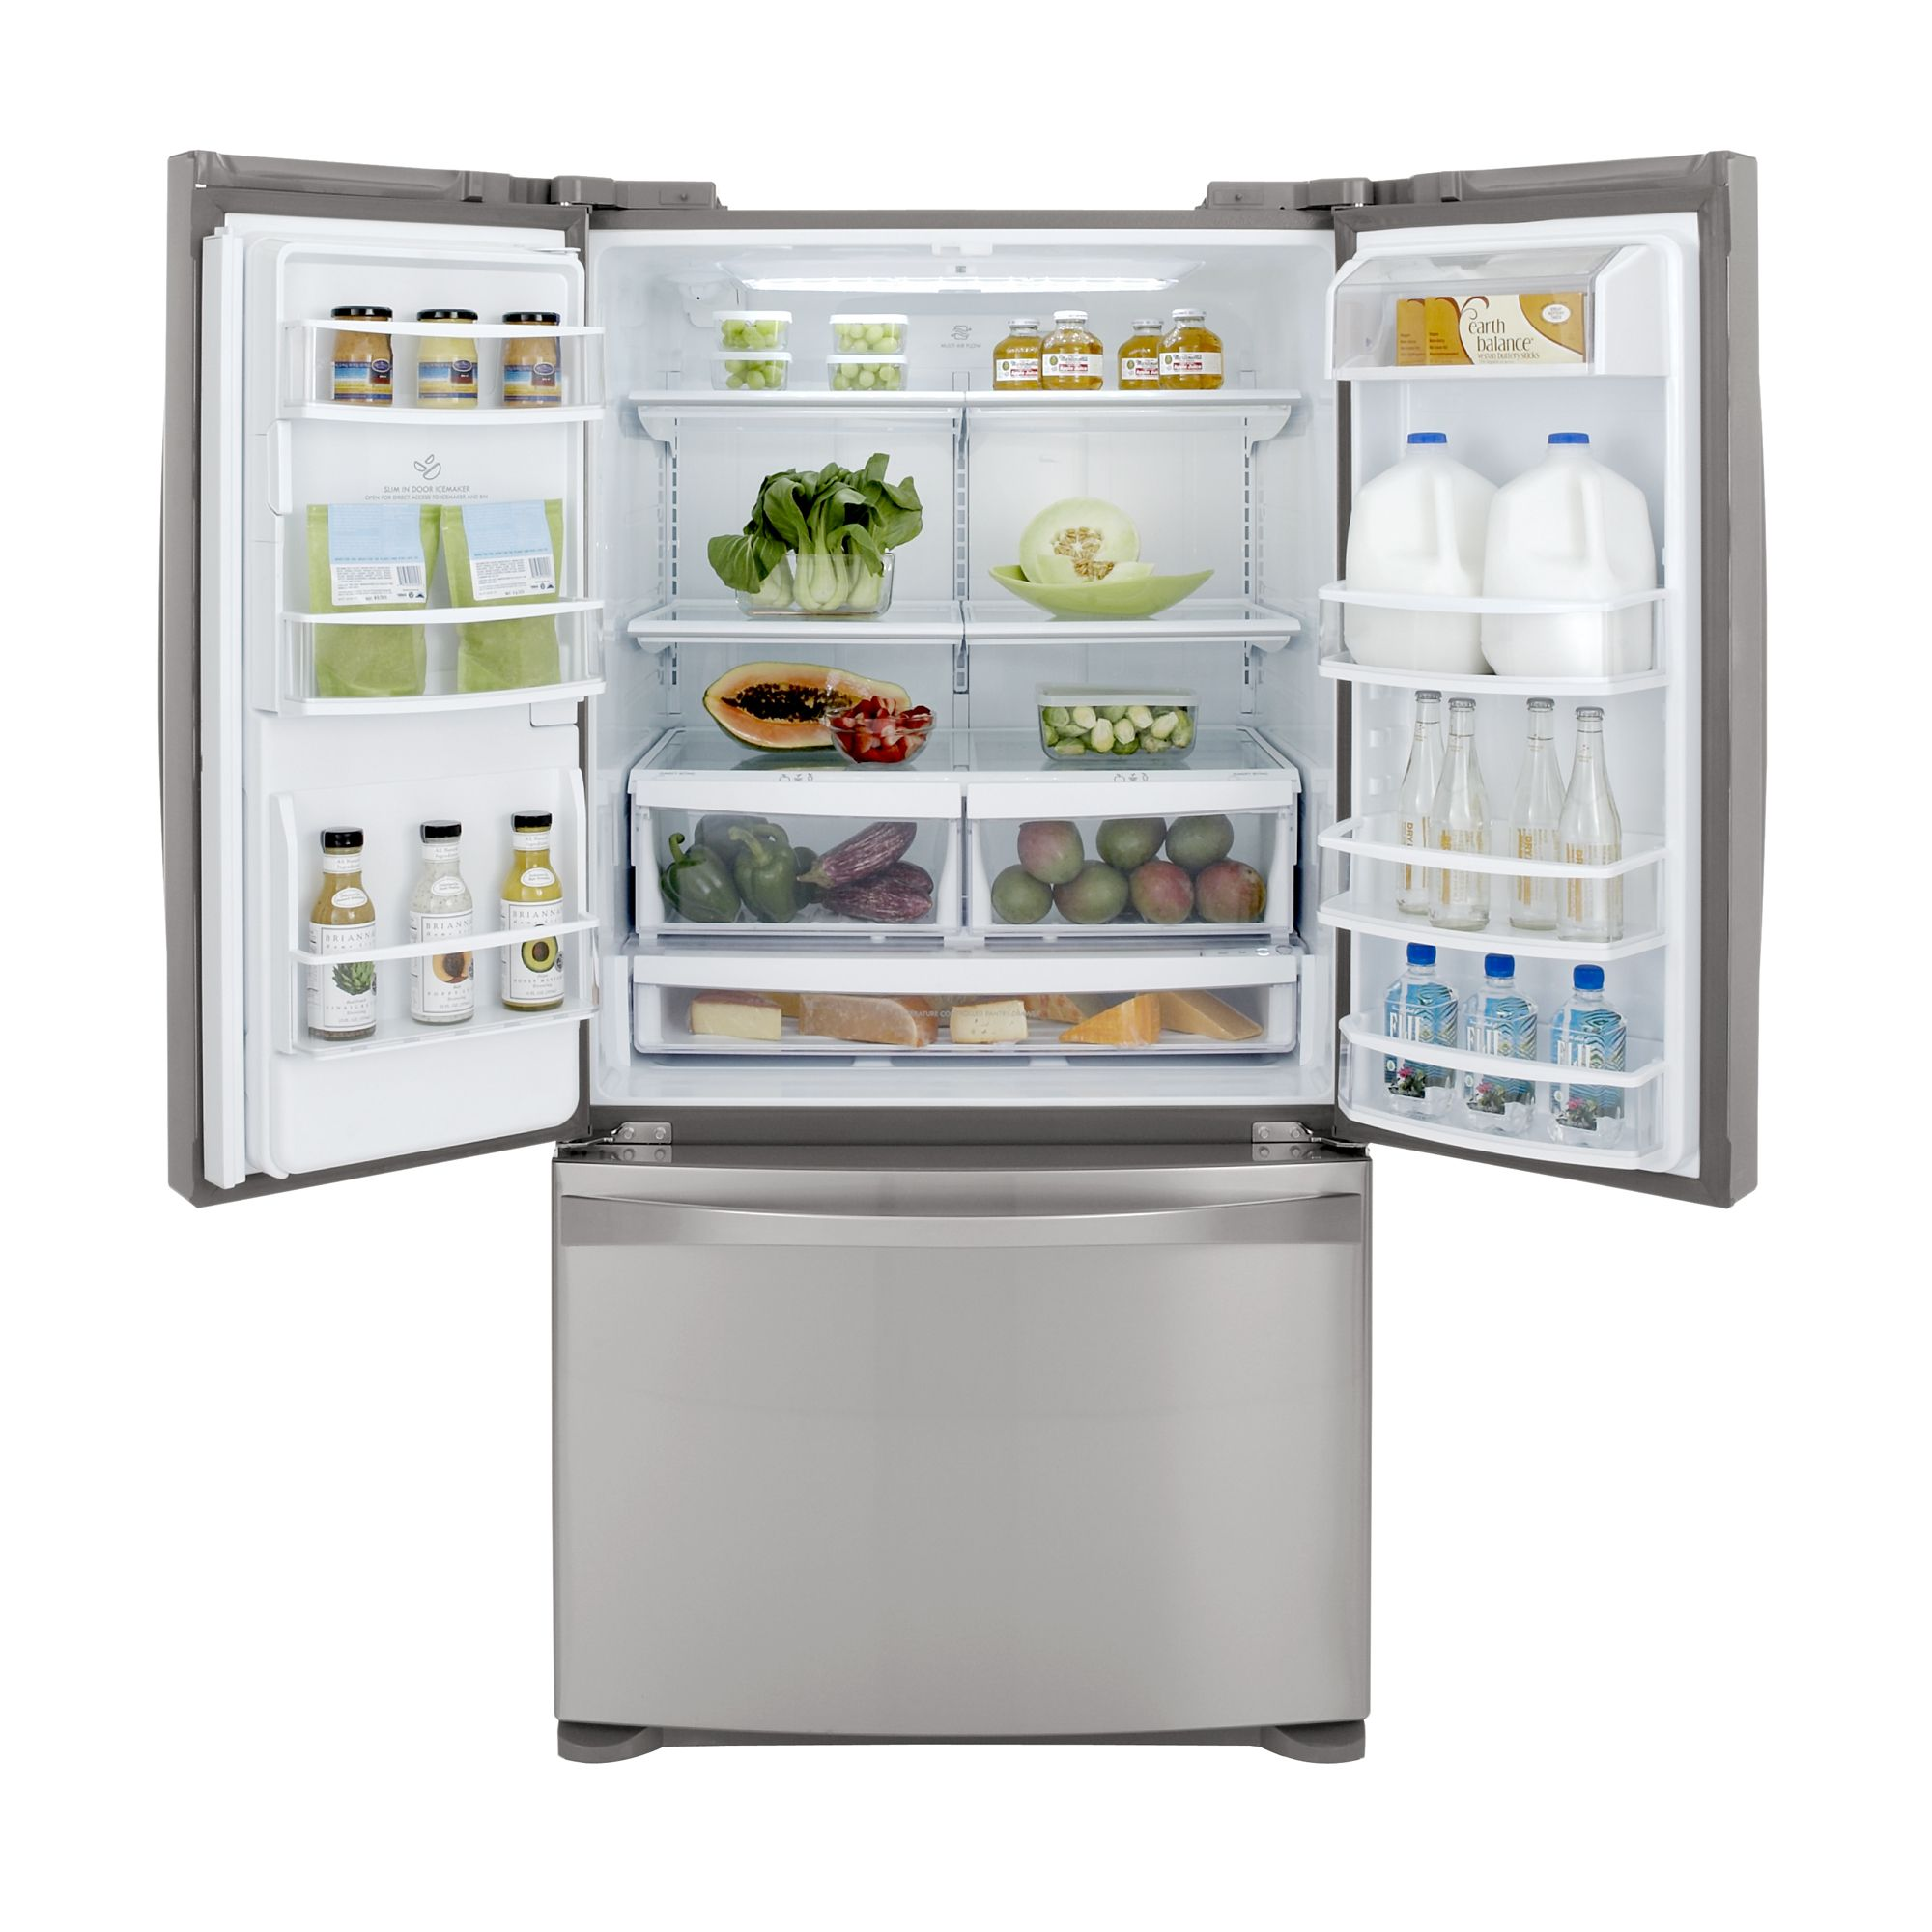 Kenmore Elite 27.6 cu. ft. French Door Bottom-Freezer Refrigerator